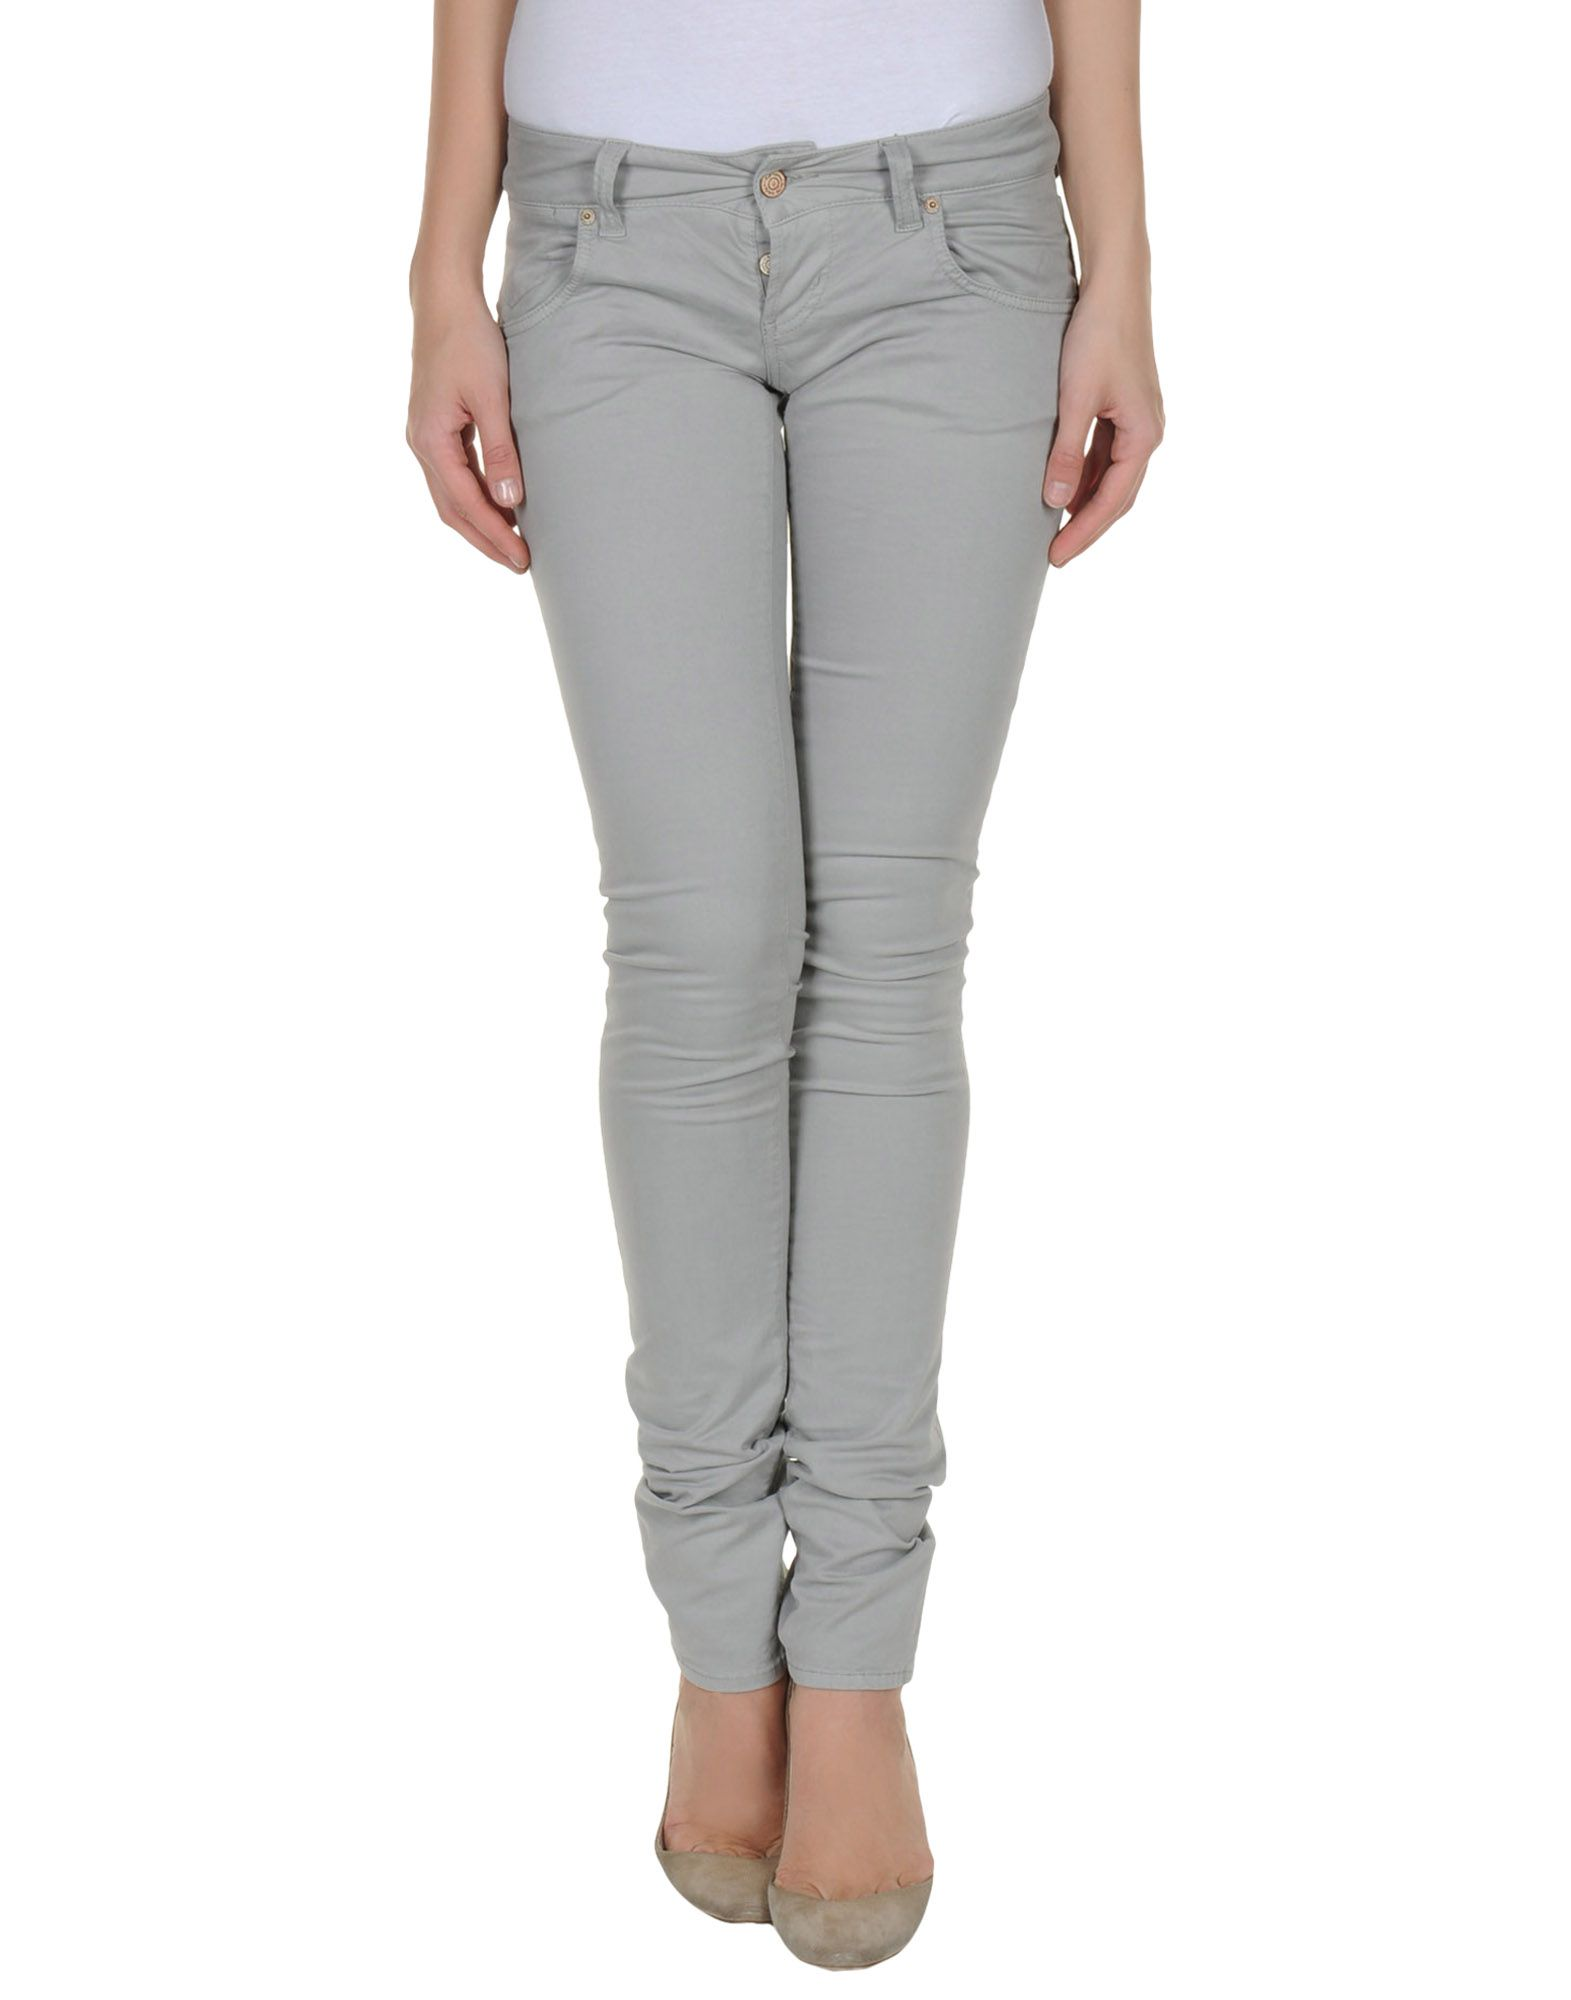 Simple Pence Casual Trouser In Gray Light Grey  Lyst